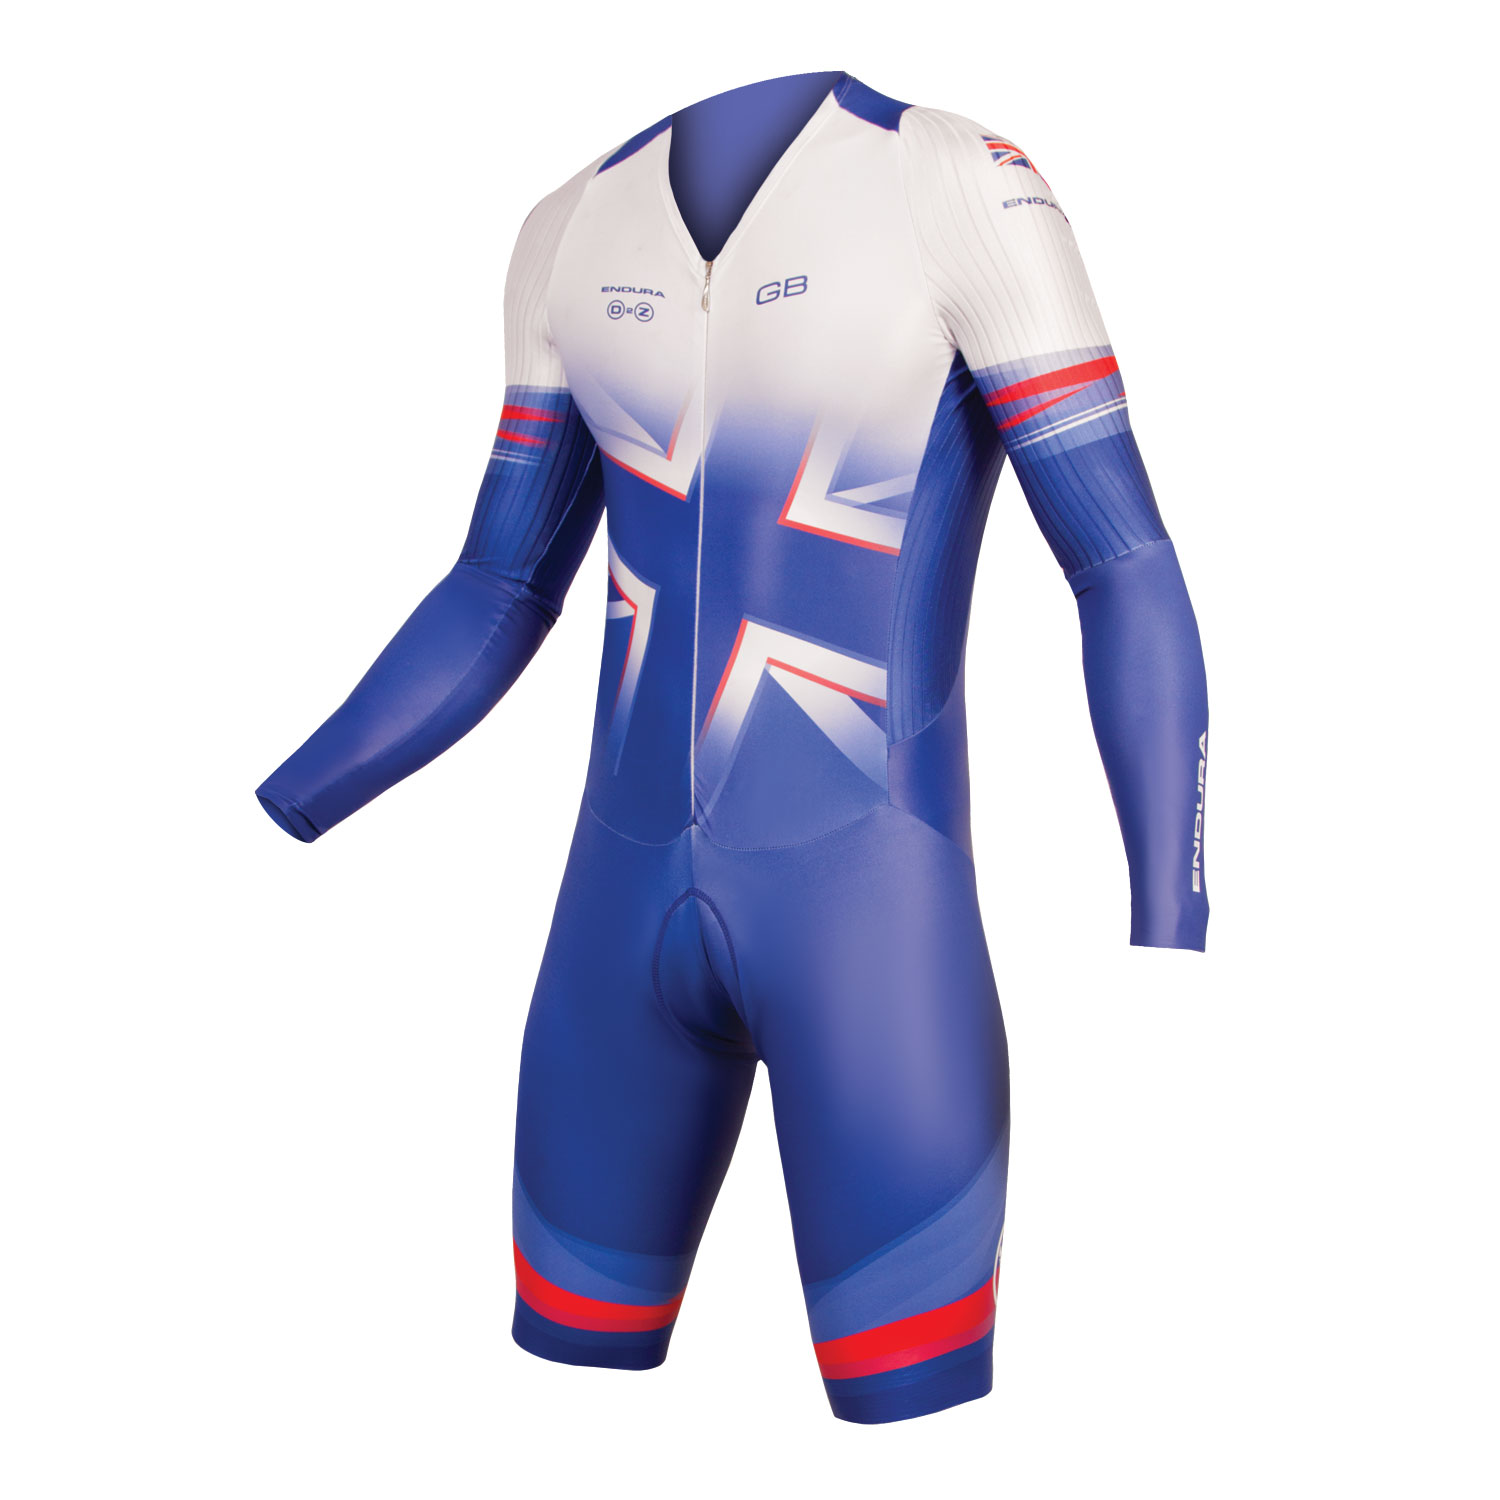 Team GB Men's Drag2Zero Encapsulator TT Suit